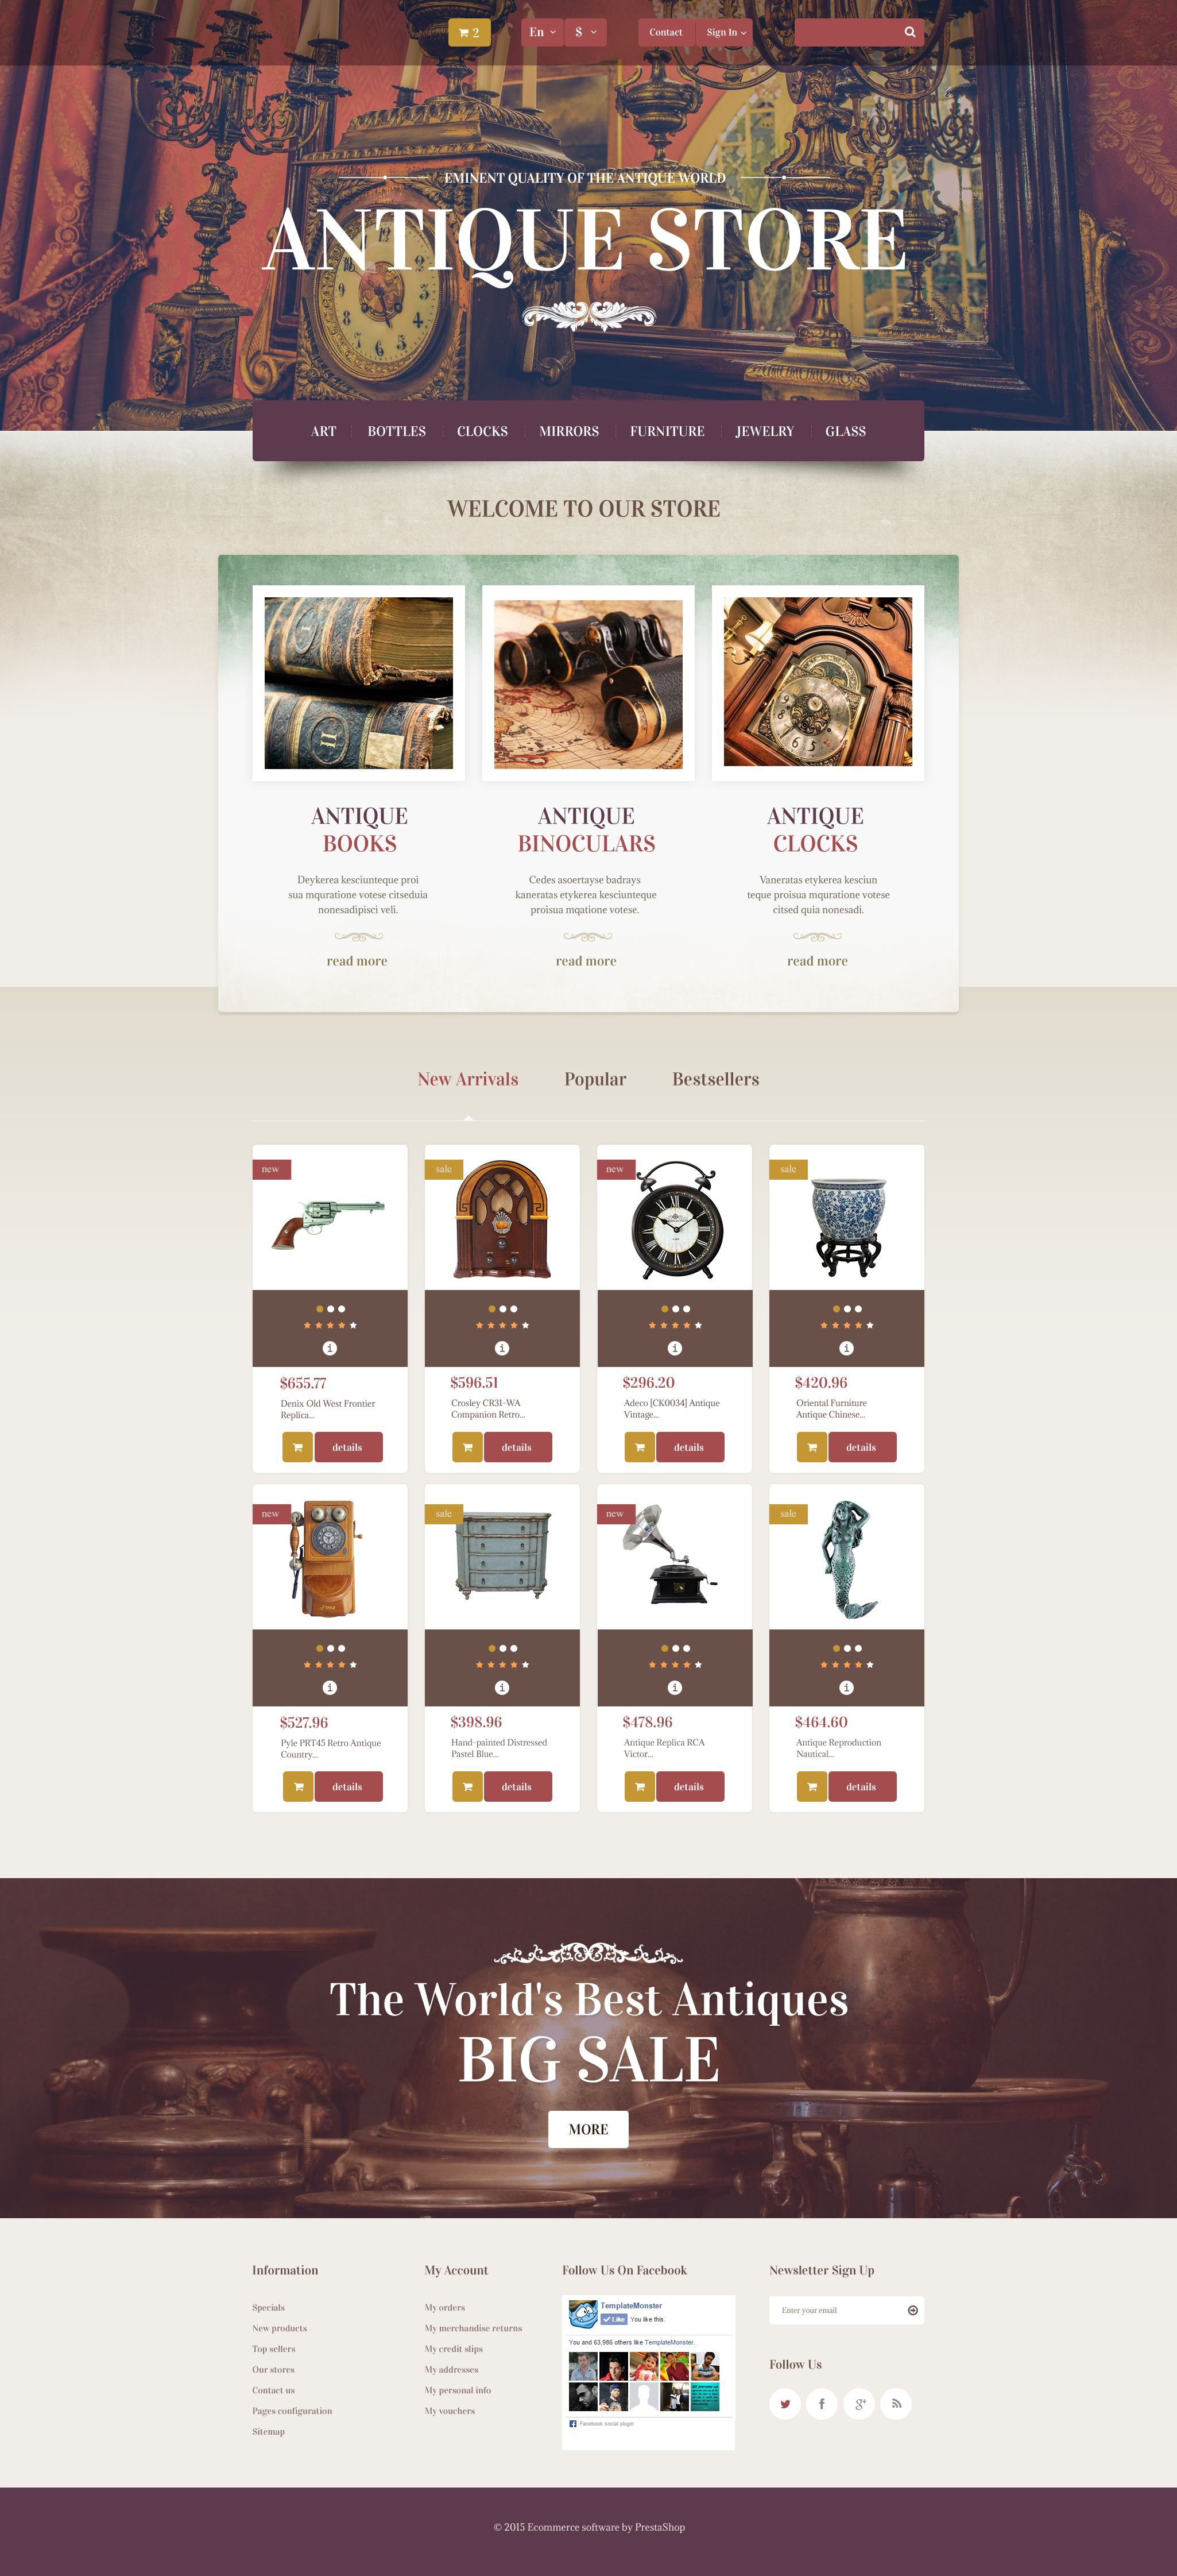 The Antique Store PrestaShop Design 53833, one of the best PrestaShop themes of its kind (most popular, antique), also known as antique store PrestaShop template, antiquarian PrestaShop template, spirit PrestaShop template, products PrestaShop template, furniture PrestaShop template, weapon PrestaShop template, clock PrestaShop template, books PrestaShop template, armor PrestaShop template, statuary PrestaShop template, sculpture PrestaShop template, accessory PrestaShop template, crockery PrestaShop template, maps PrestaShop template, coins PrestaShop template, jewelry PrestaShop template, boxes dealers PrestaShop template, rare PrestaShop template, old PrestaShop template, rarity PrestaShop template, collection and related with antique store, antiquarian, spirit, products, furniture, weapon, clock, books, armor, statuary, sculpture, accessory, crockery, maps, coins, jewelry, boxes dealers, rare, old, rarity, collection, etc.